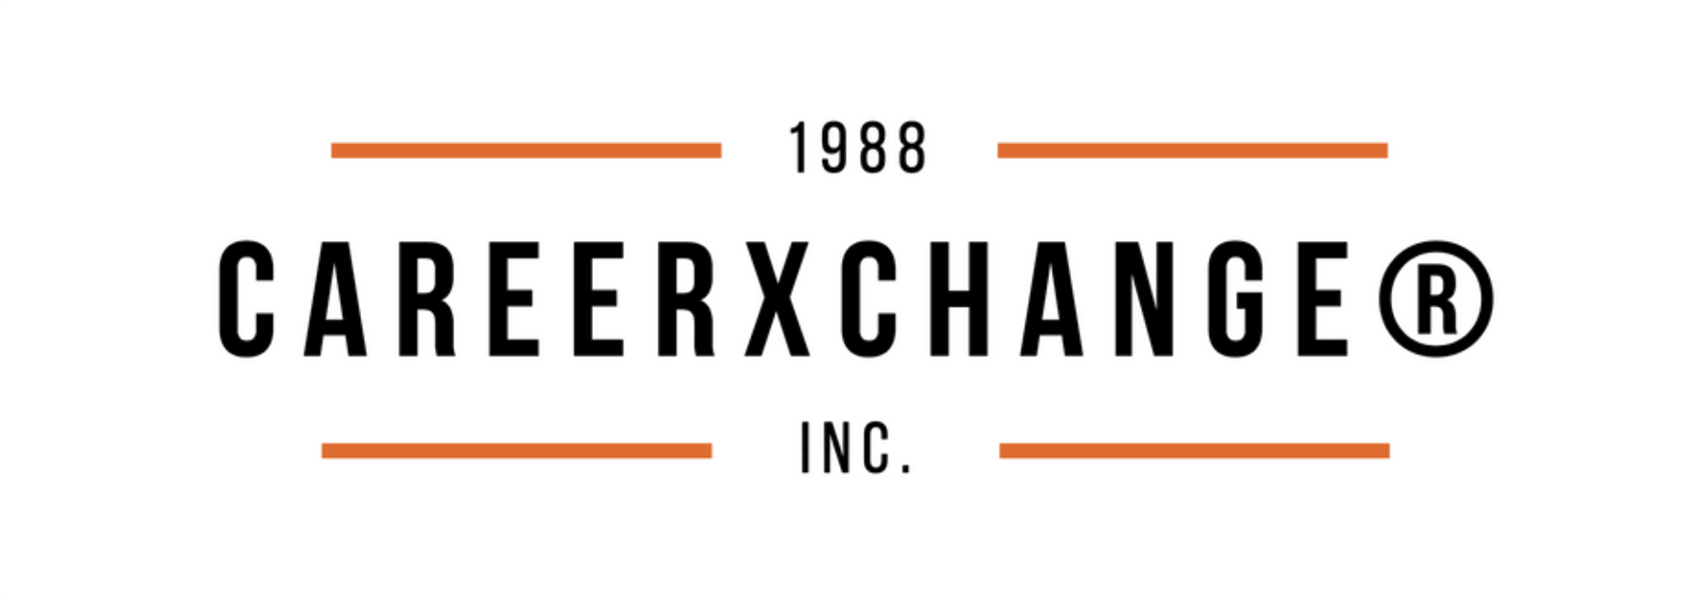 CAREERXCHANGE®, Inc.